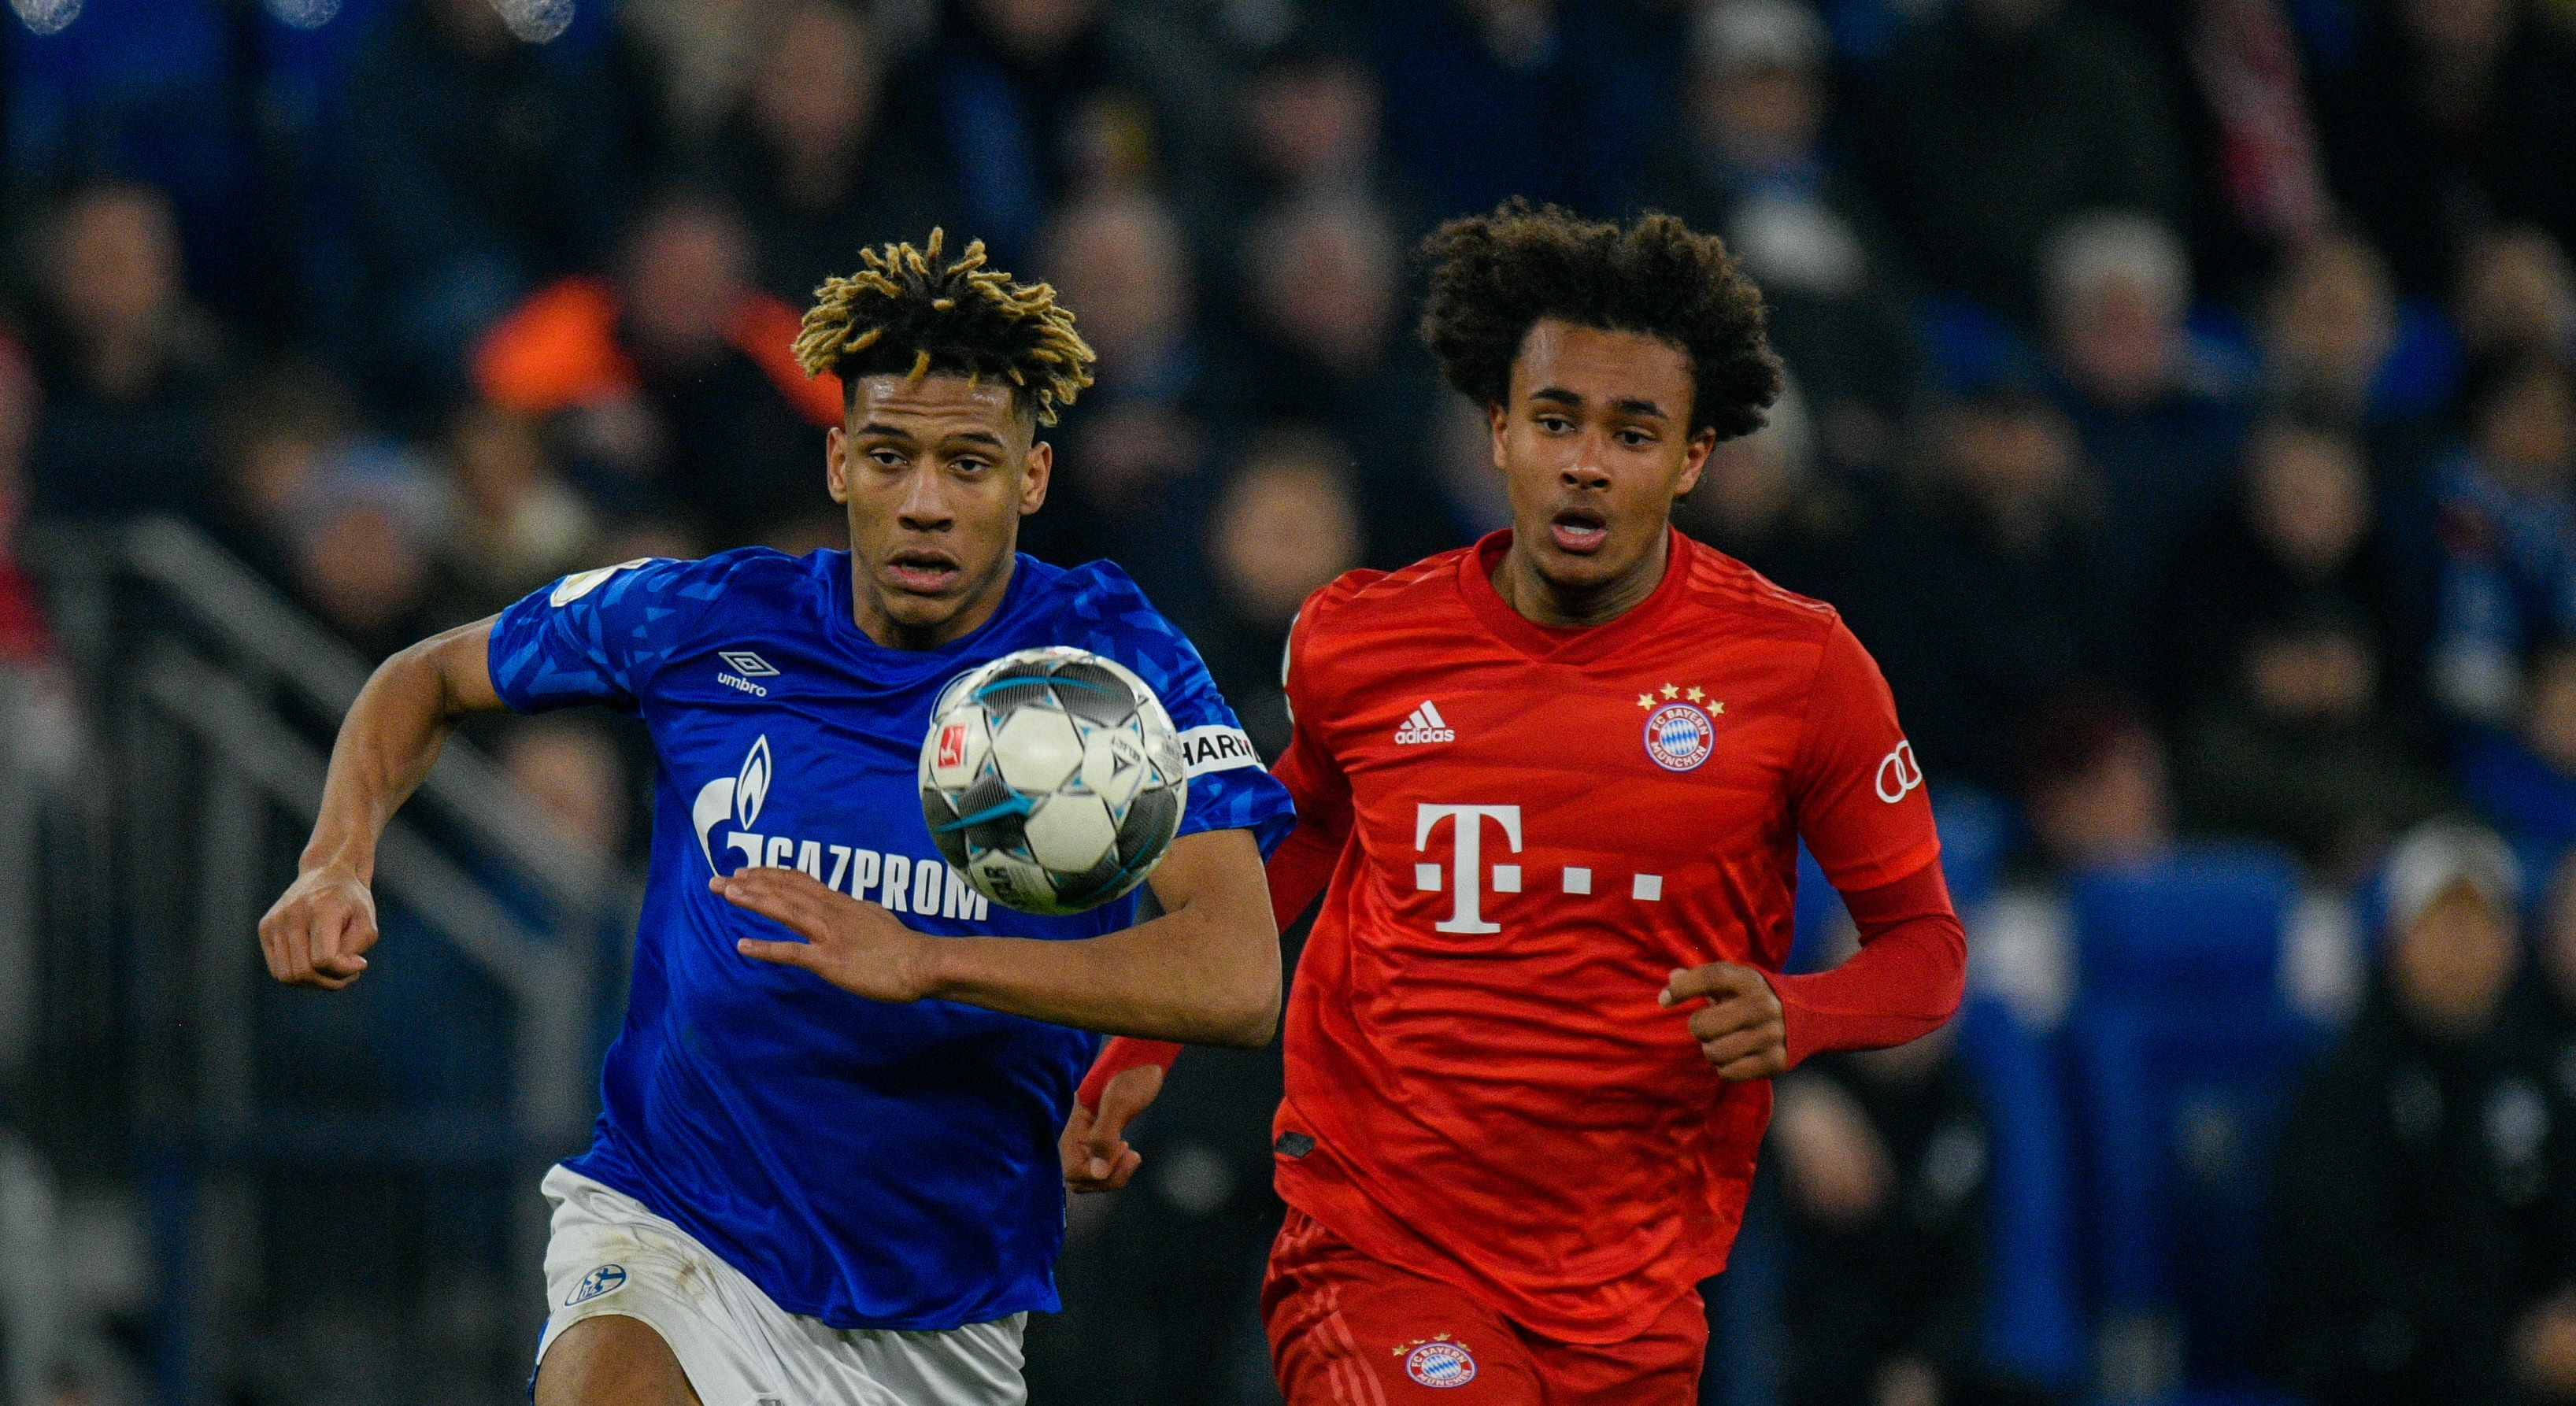 Bent urges Everton to make loan-to-buy offer for Joshua Zirkzee who is seen in the photo